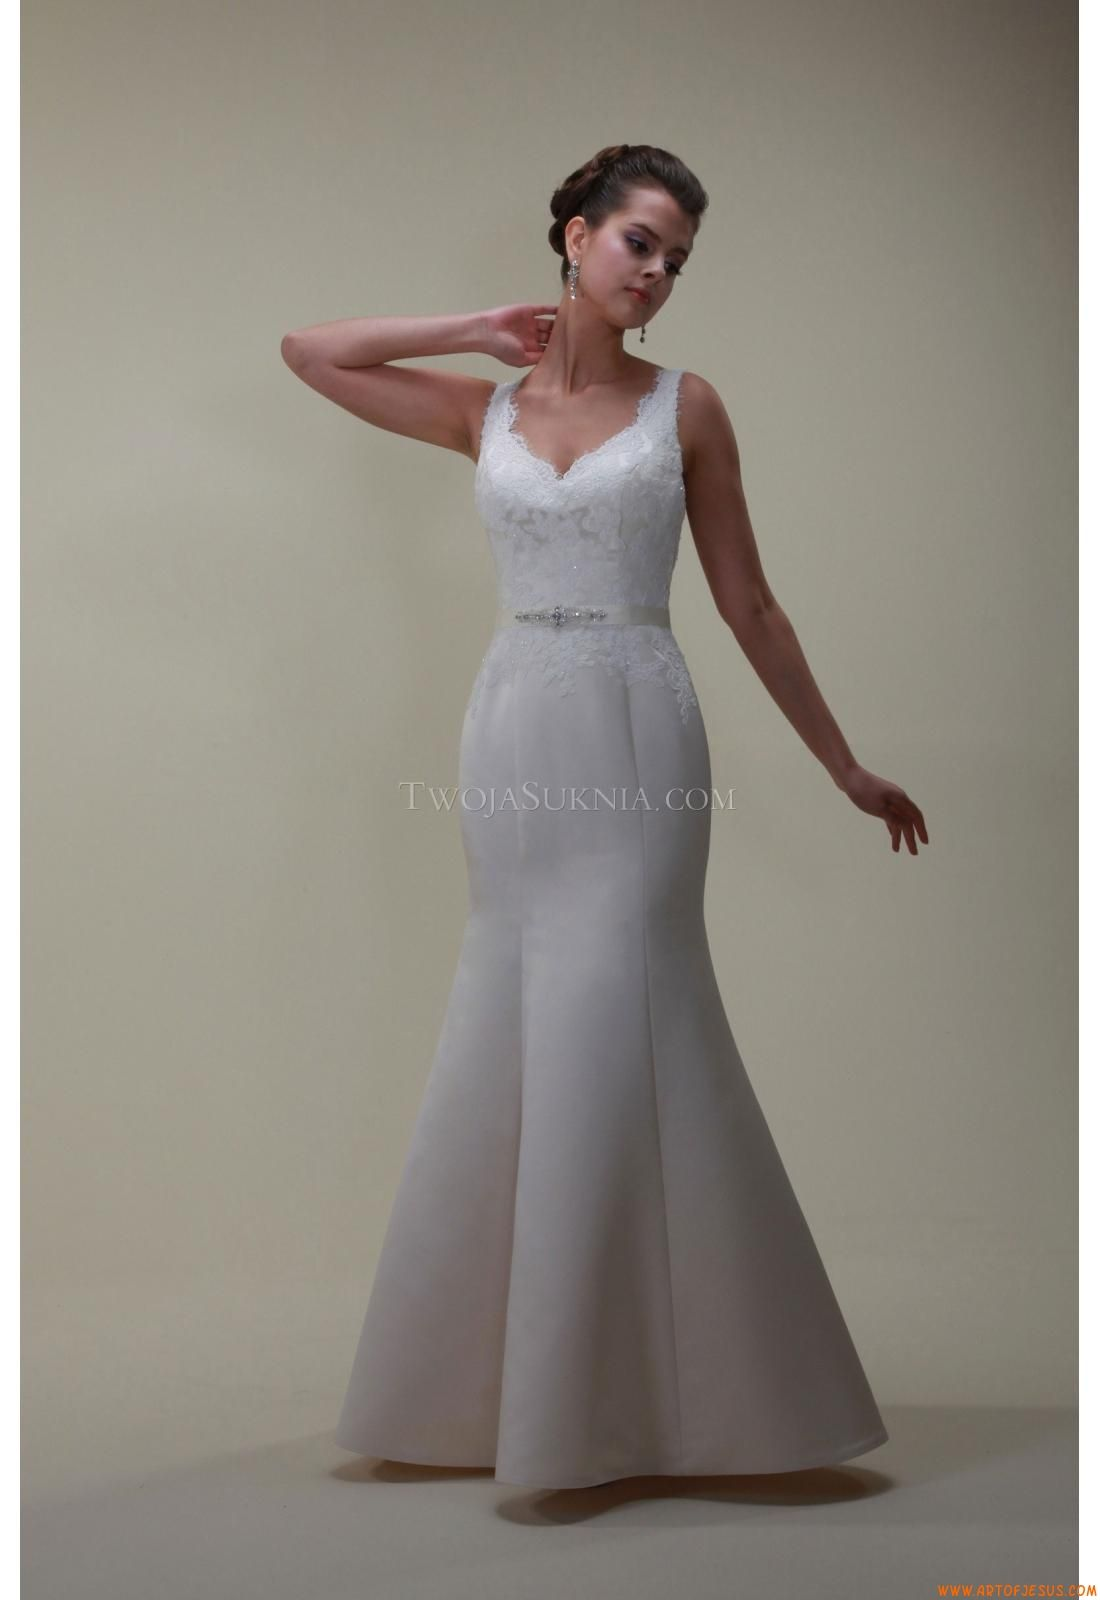 Wedding Dresses Venus VN6789 Venus Informal 2013 | wedding dresses ...